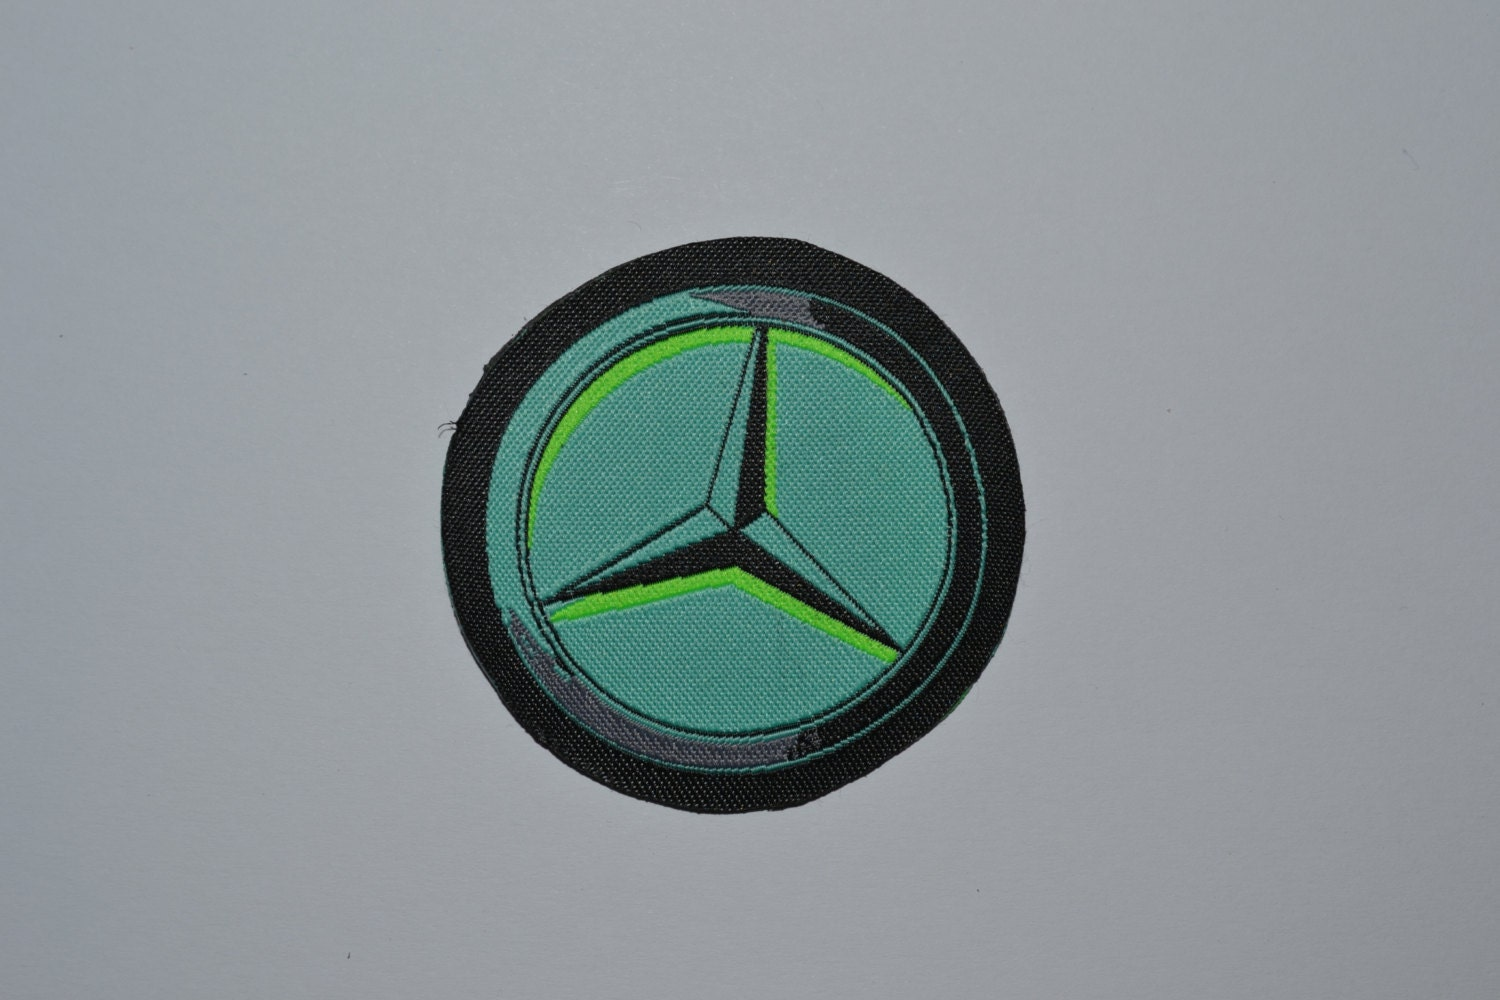 Mercedes benz patches iron emblem logo badge label for Mercedes benz iron